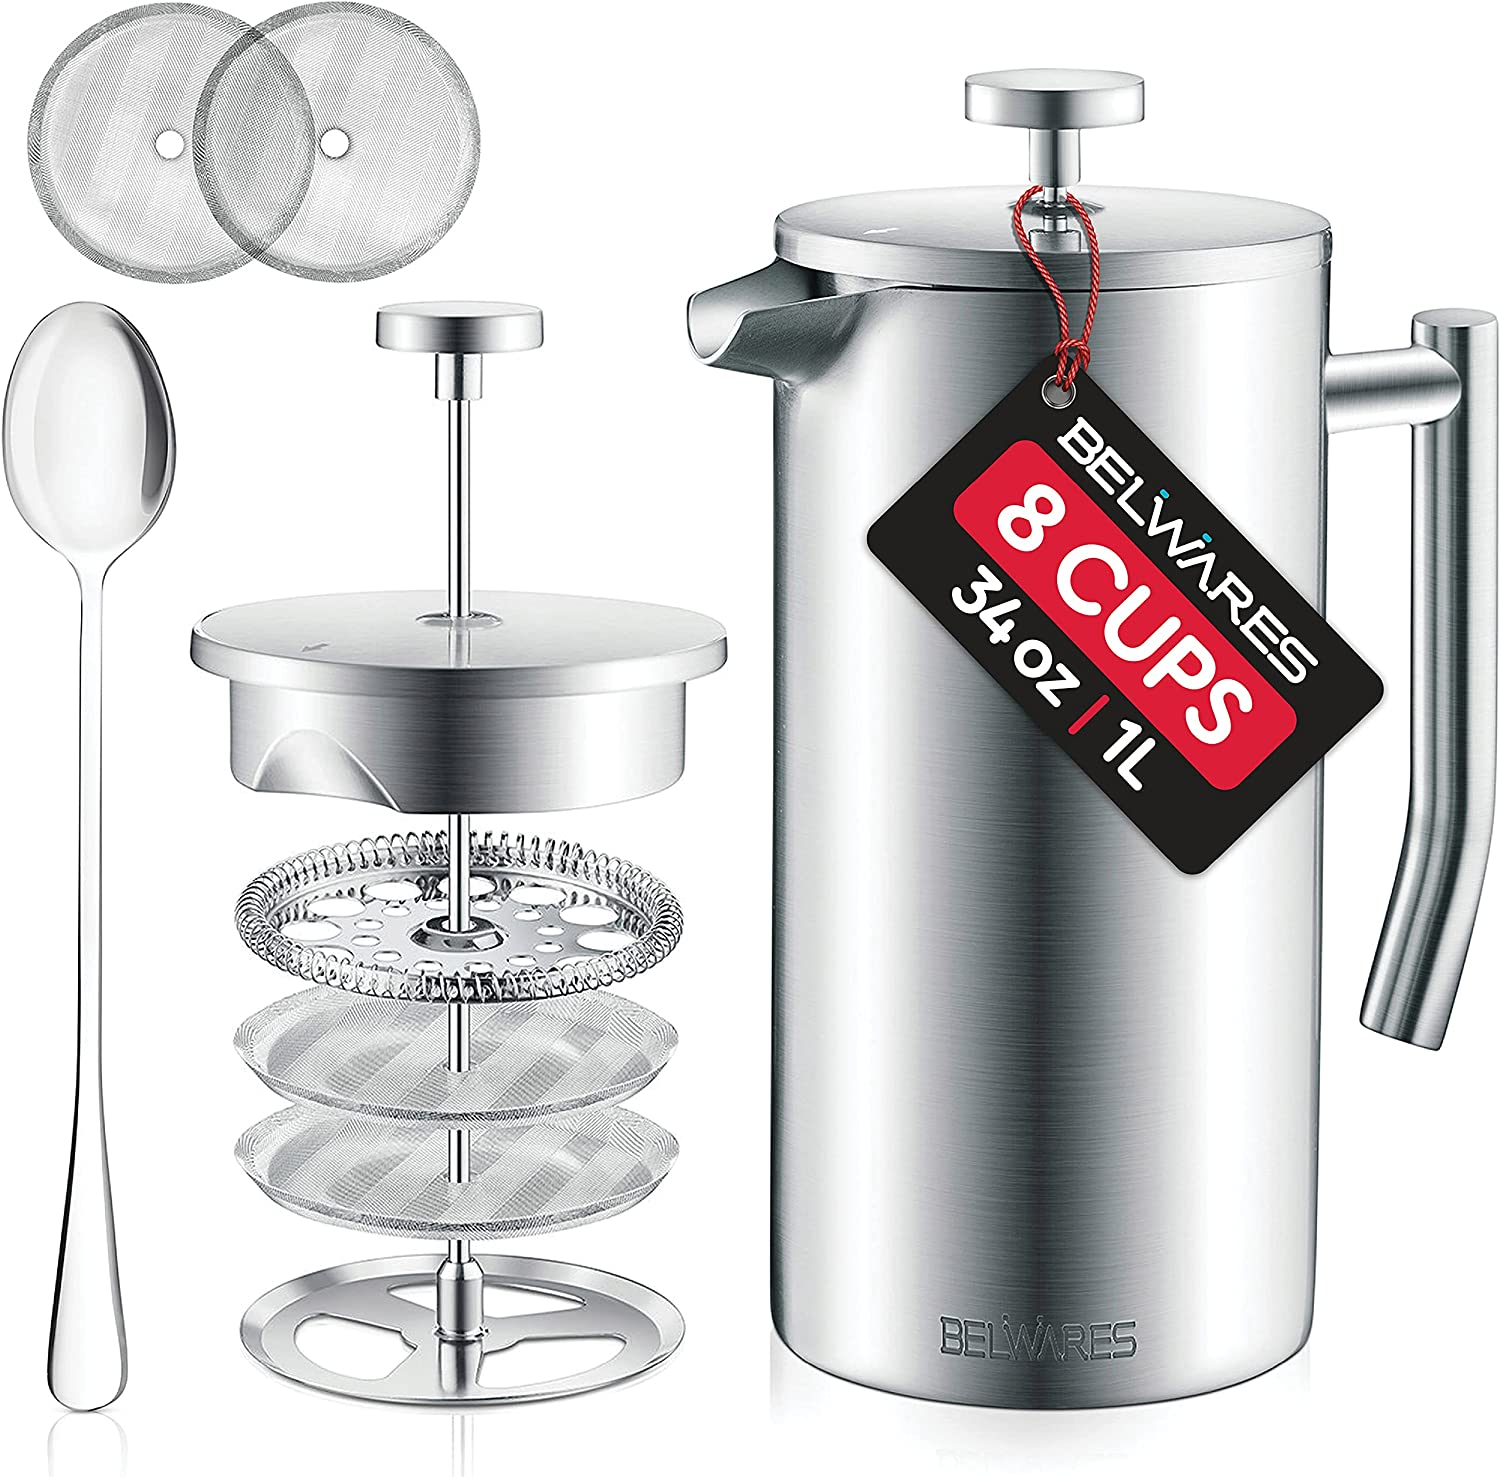 Belwares French Press Coffee Maker Max 65% OFF - Wall S Quality inspection Double Stainless 304